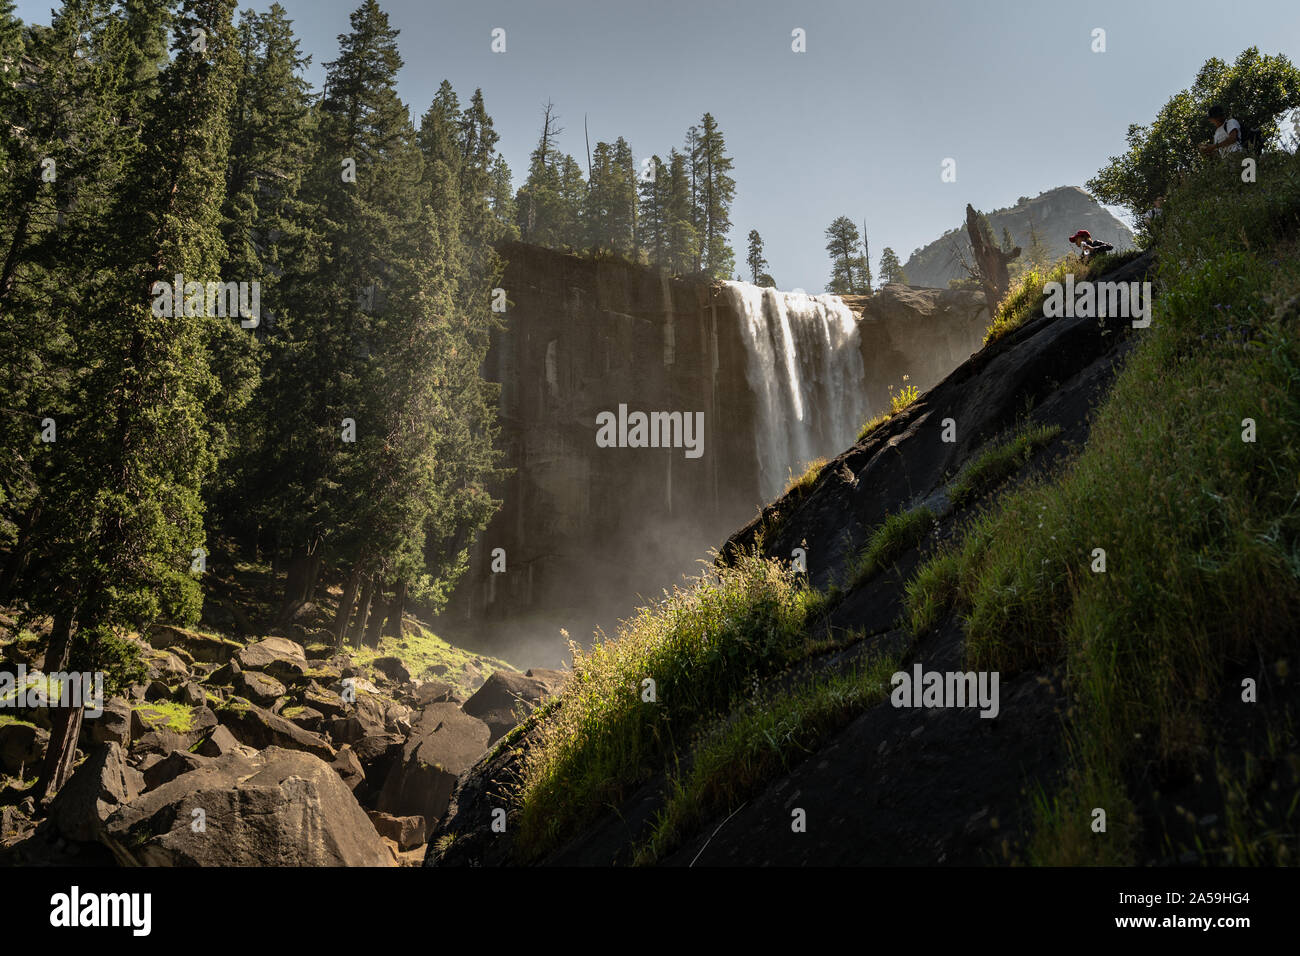 Yosemite National Park Nevada Waterfall in California Stock Photo